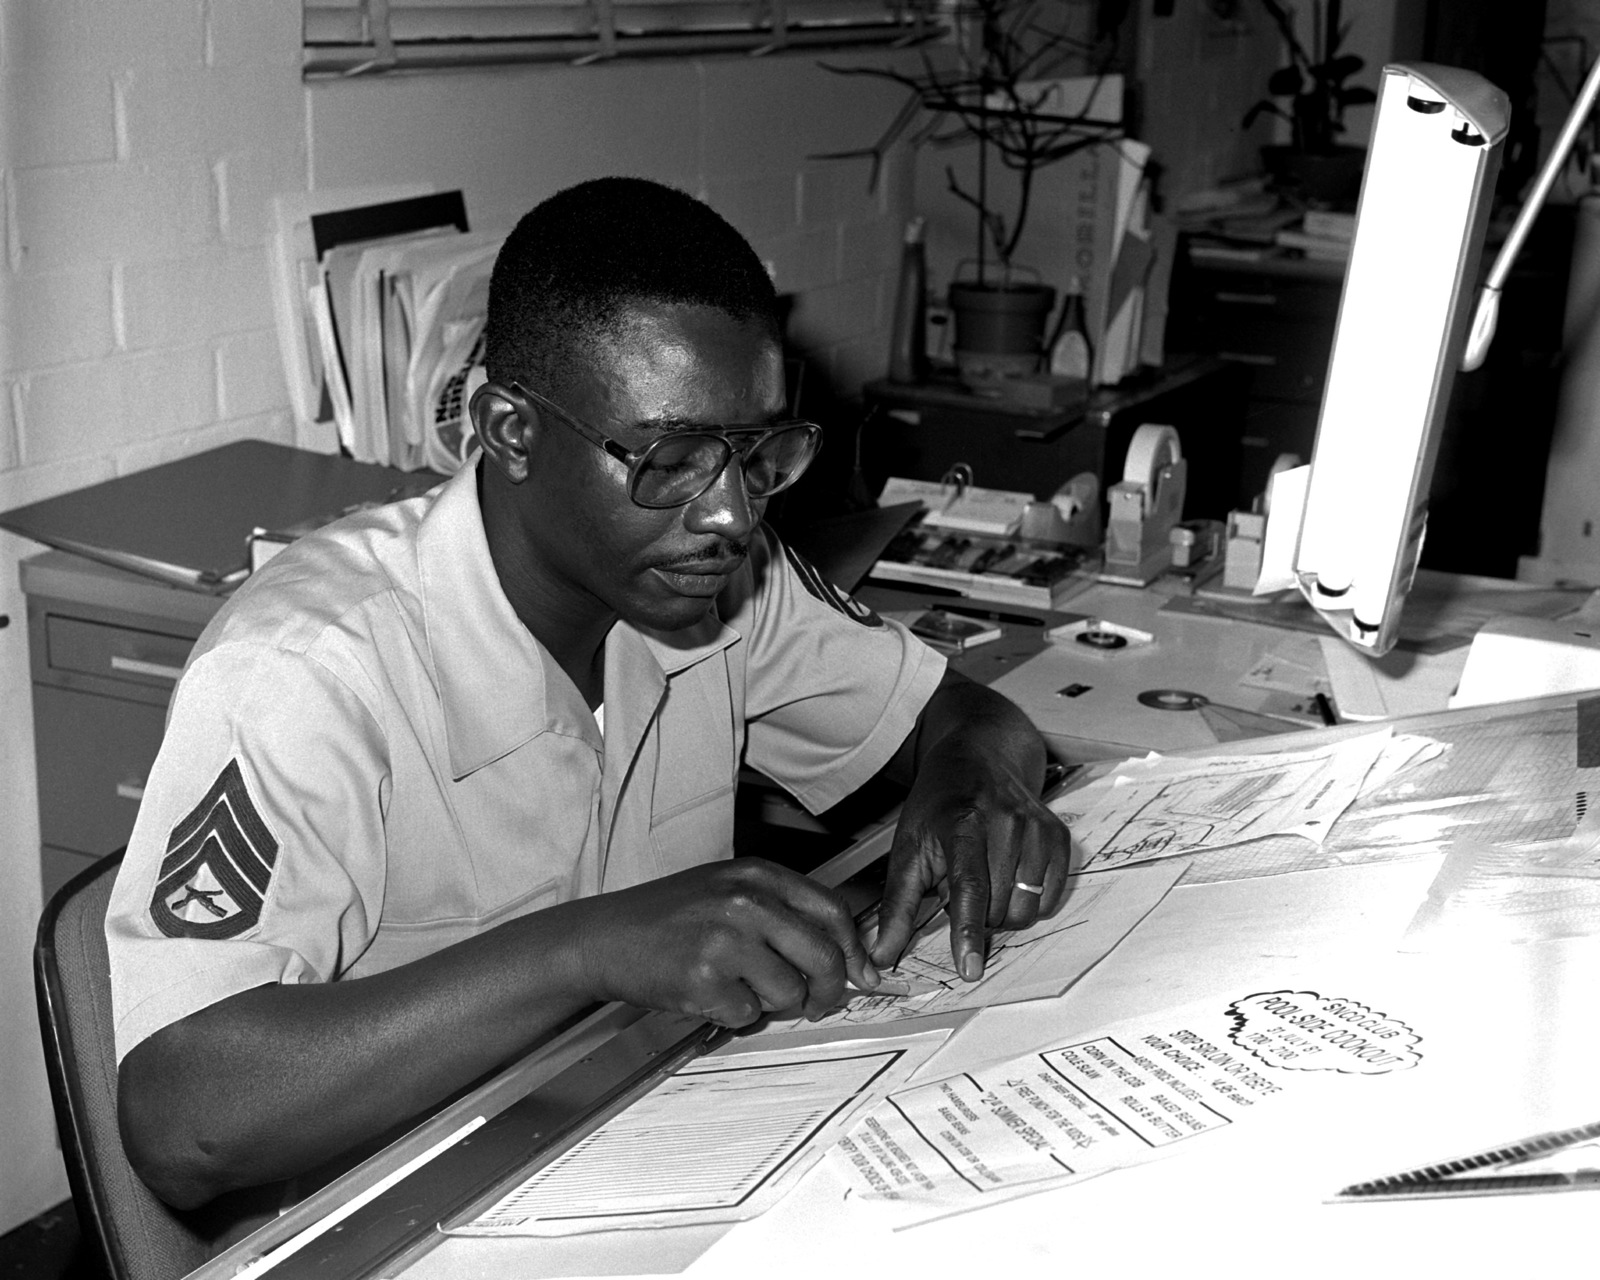 SSGT Moses McNeil is constructing a map of the housing area that is located aboard the Marine Corps Logistics Base. McNeil works for the Graphic Arts Branch of the Facilities and Services Division